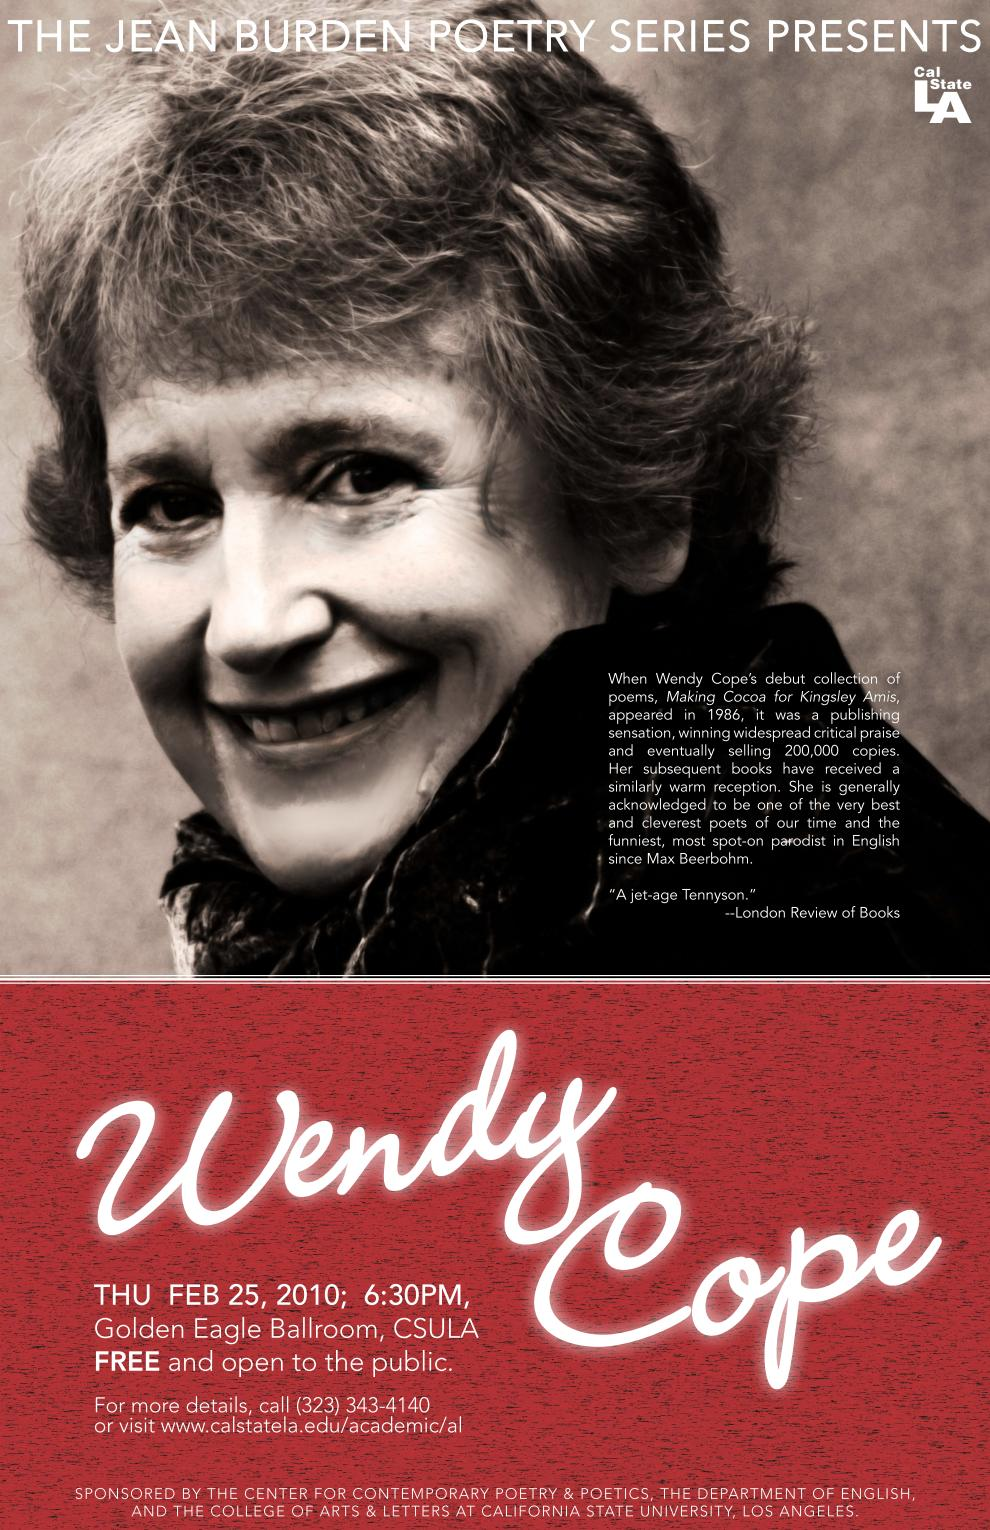 Image of Wendy Cope poster